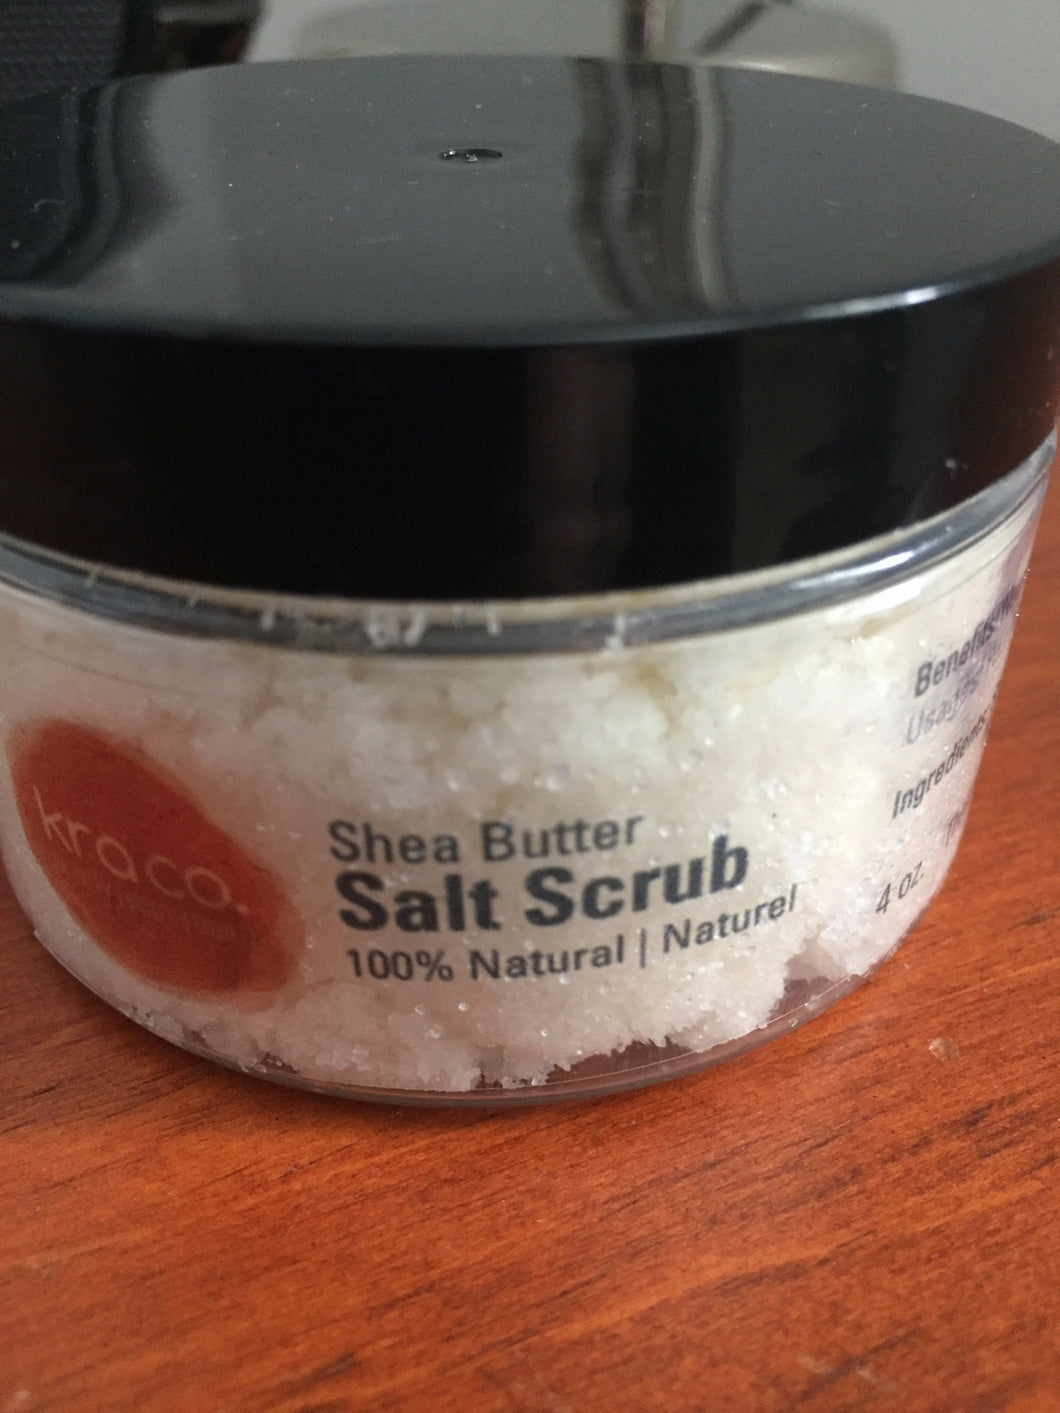 Shea Butter Salt Scrub